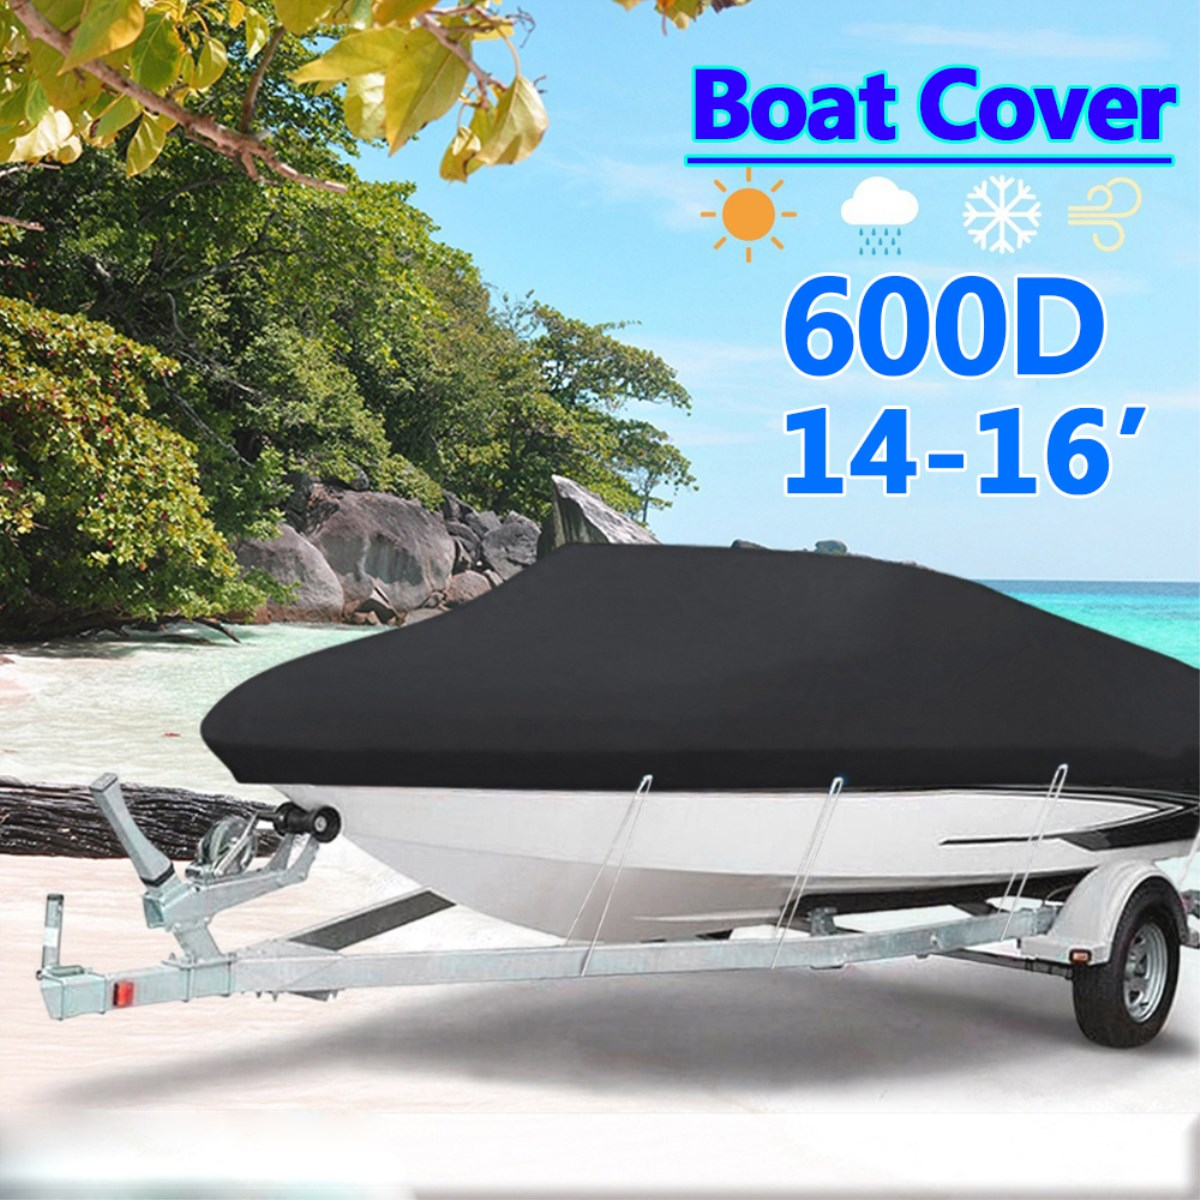 Black Heavy Duty 14-16ft 600D Beam 90inch Trailerable Marine Grade Boat Cover for Yacht Boat Waterproof Anti-UV Boat Accessories heavy duty 60v 600a marine dual battery selector switch for boat rv semi motor yacht boats red abd black page 5